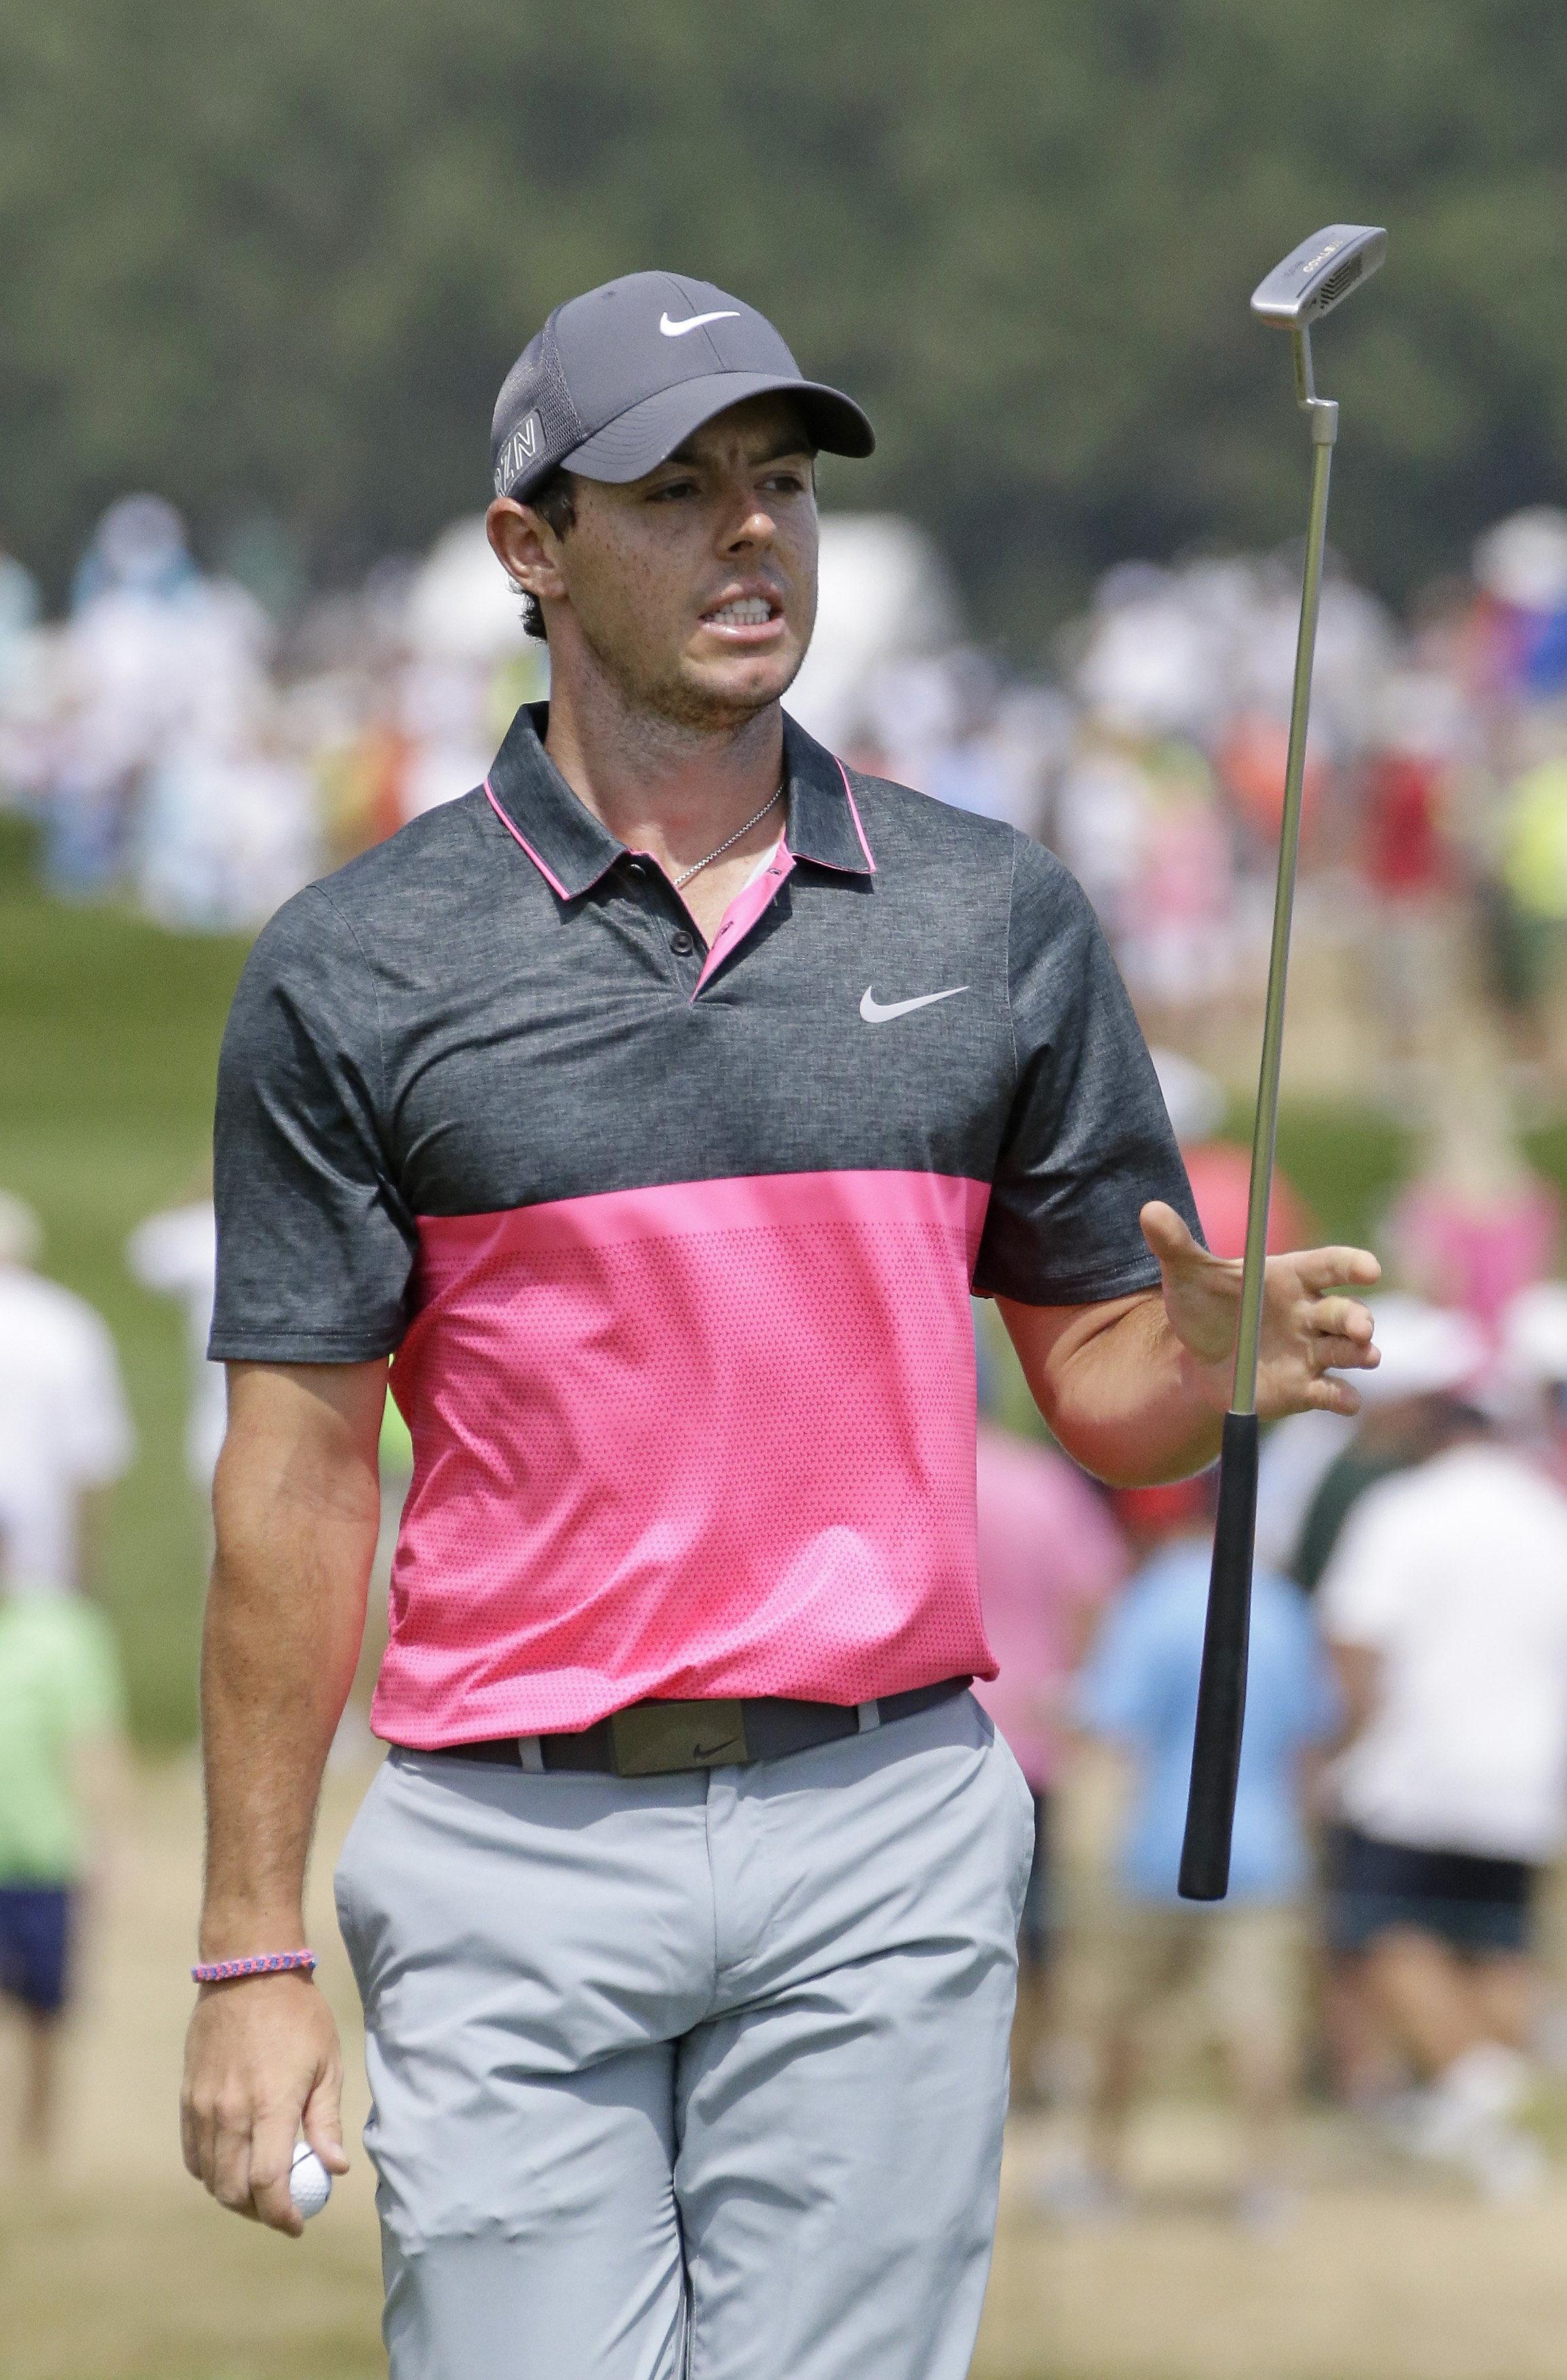 Rory McIlroy, of Northern Ireland, swings his putter on the second hole during the fourth round of the PGA Championship golf tournament Sunday, Aug. 16, 2015, at Whistling Straits in Haven, Wis. (AP Photo/Brynn Anderson)